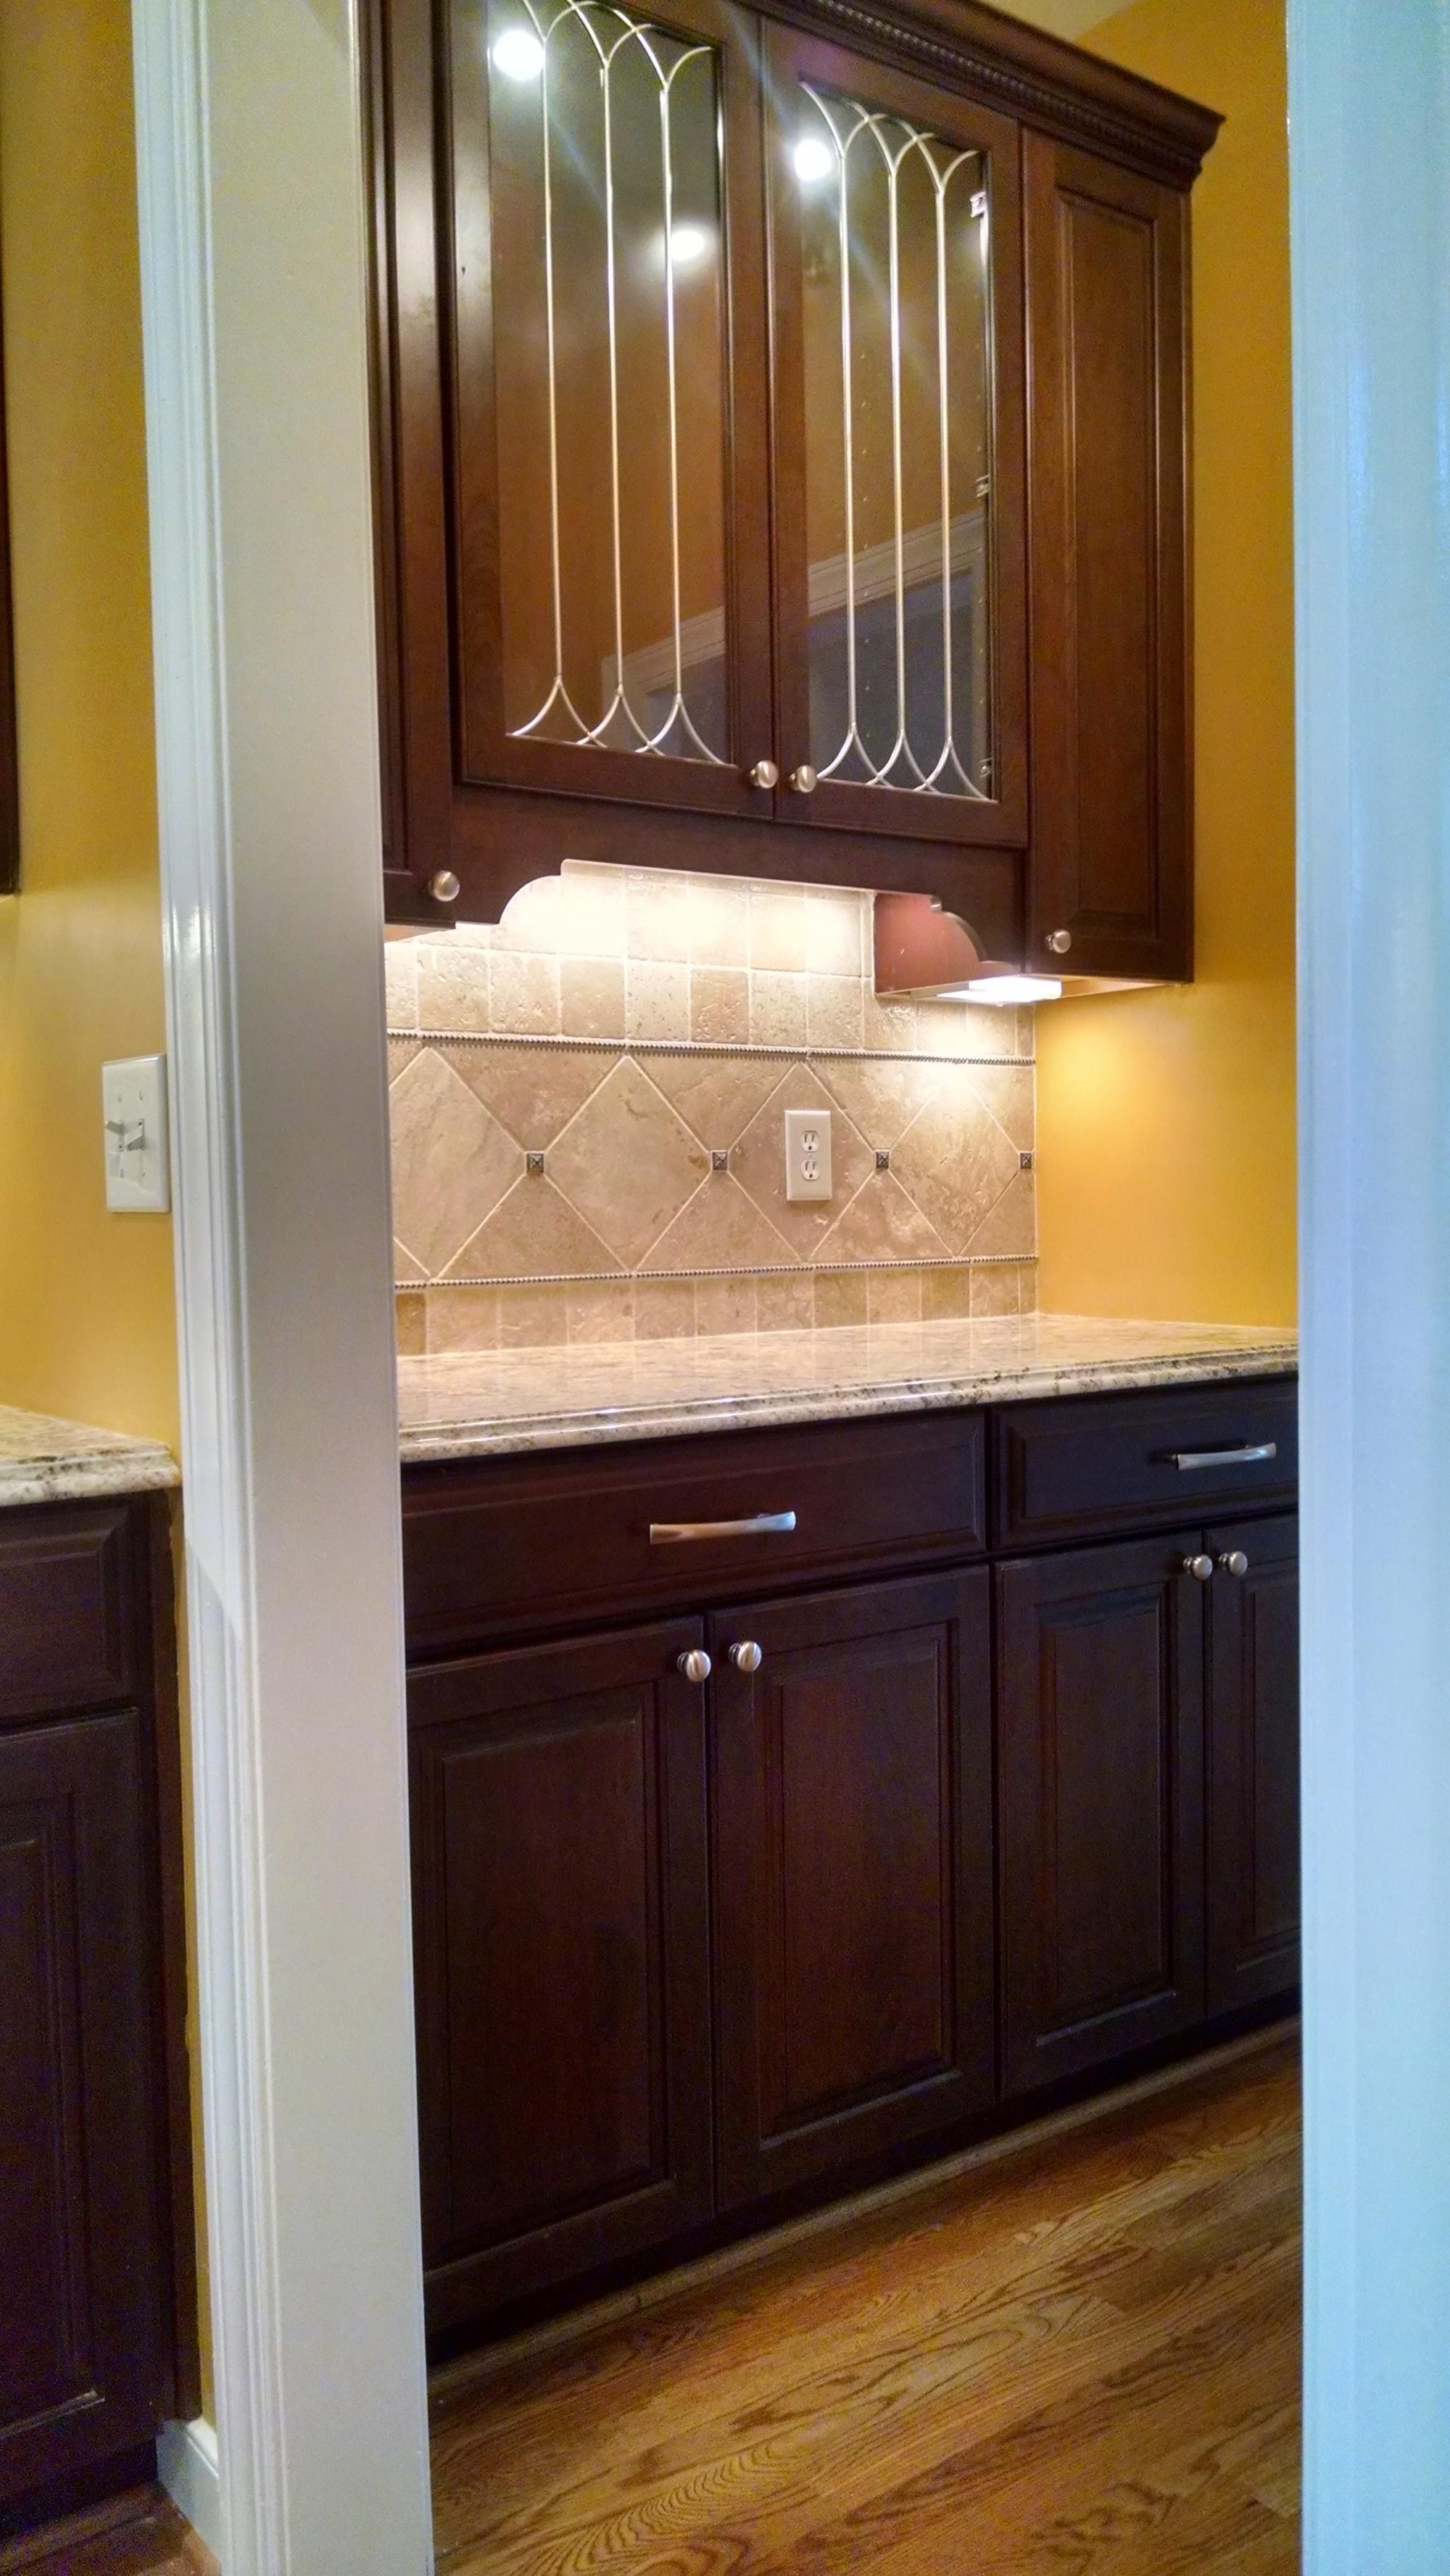 Kitchen Remodel The Highlands Rva Remodeling Llc